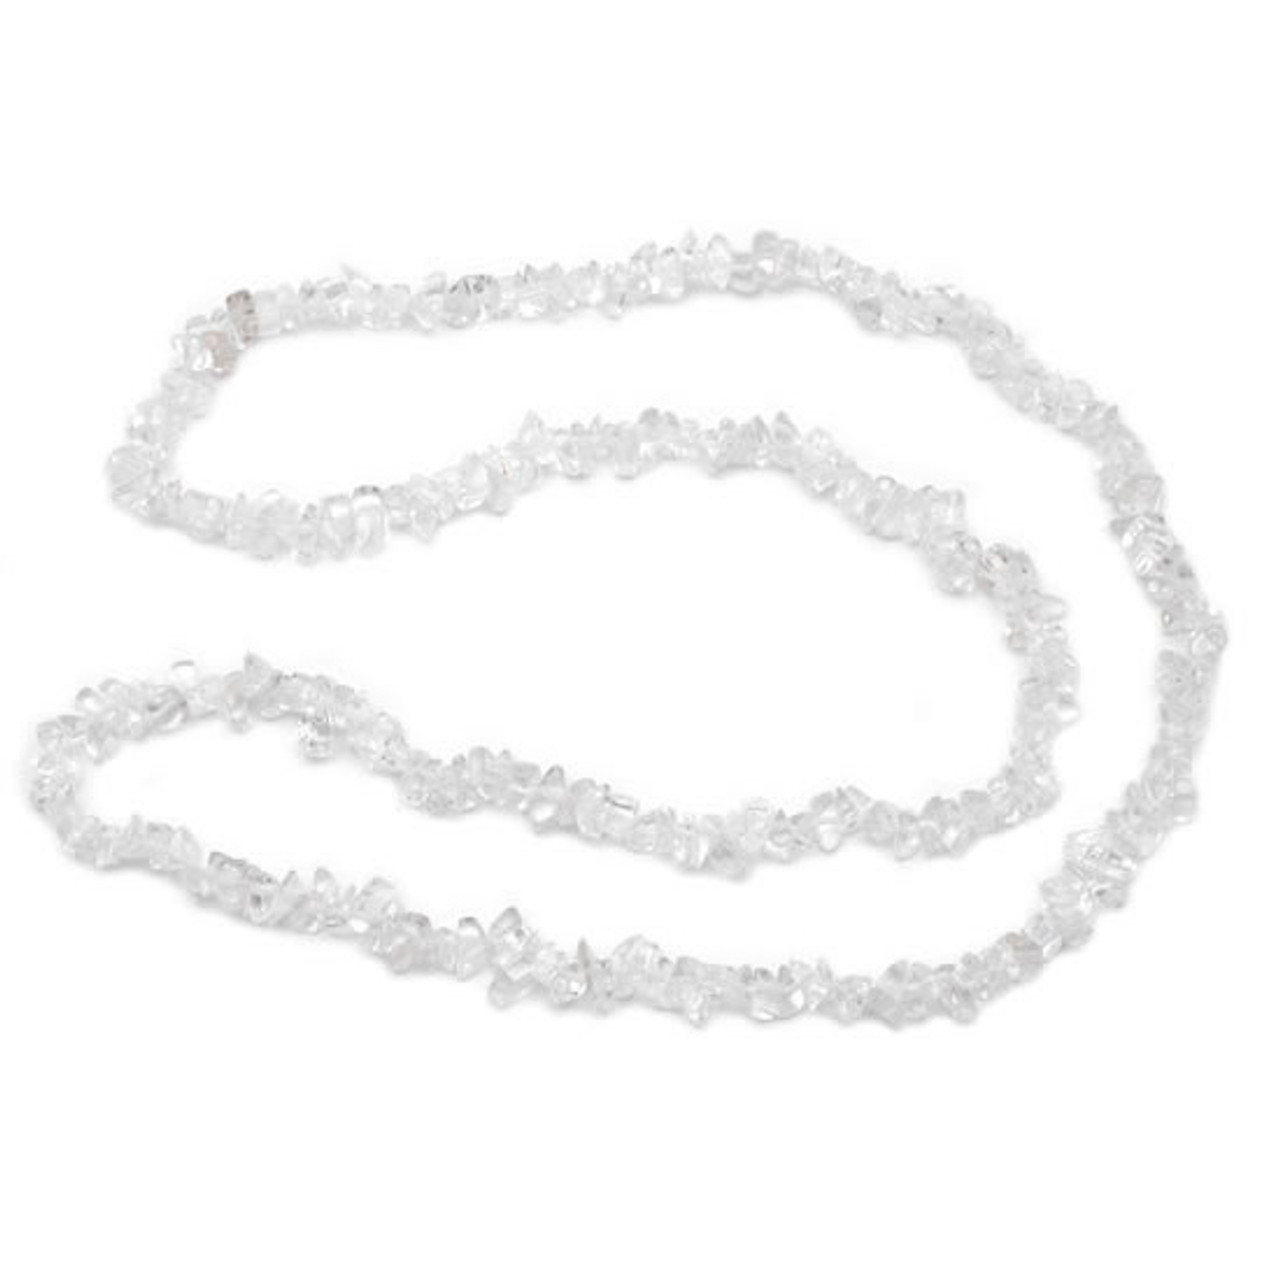 Clear Quartz Crystal Chip Necklace (32 Inch)